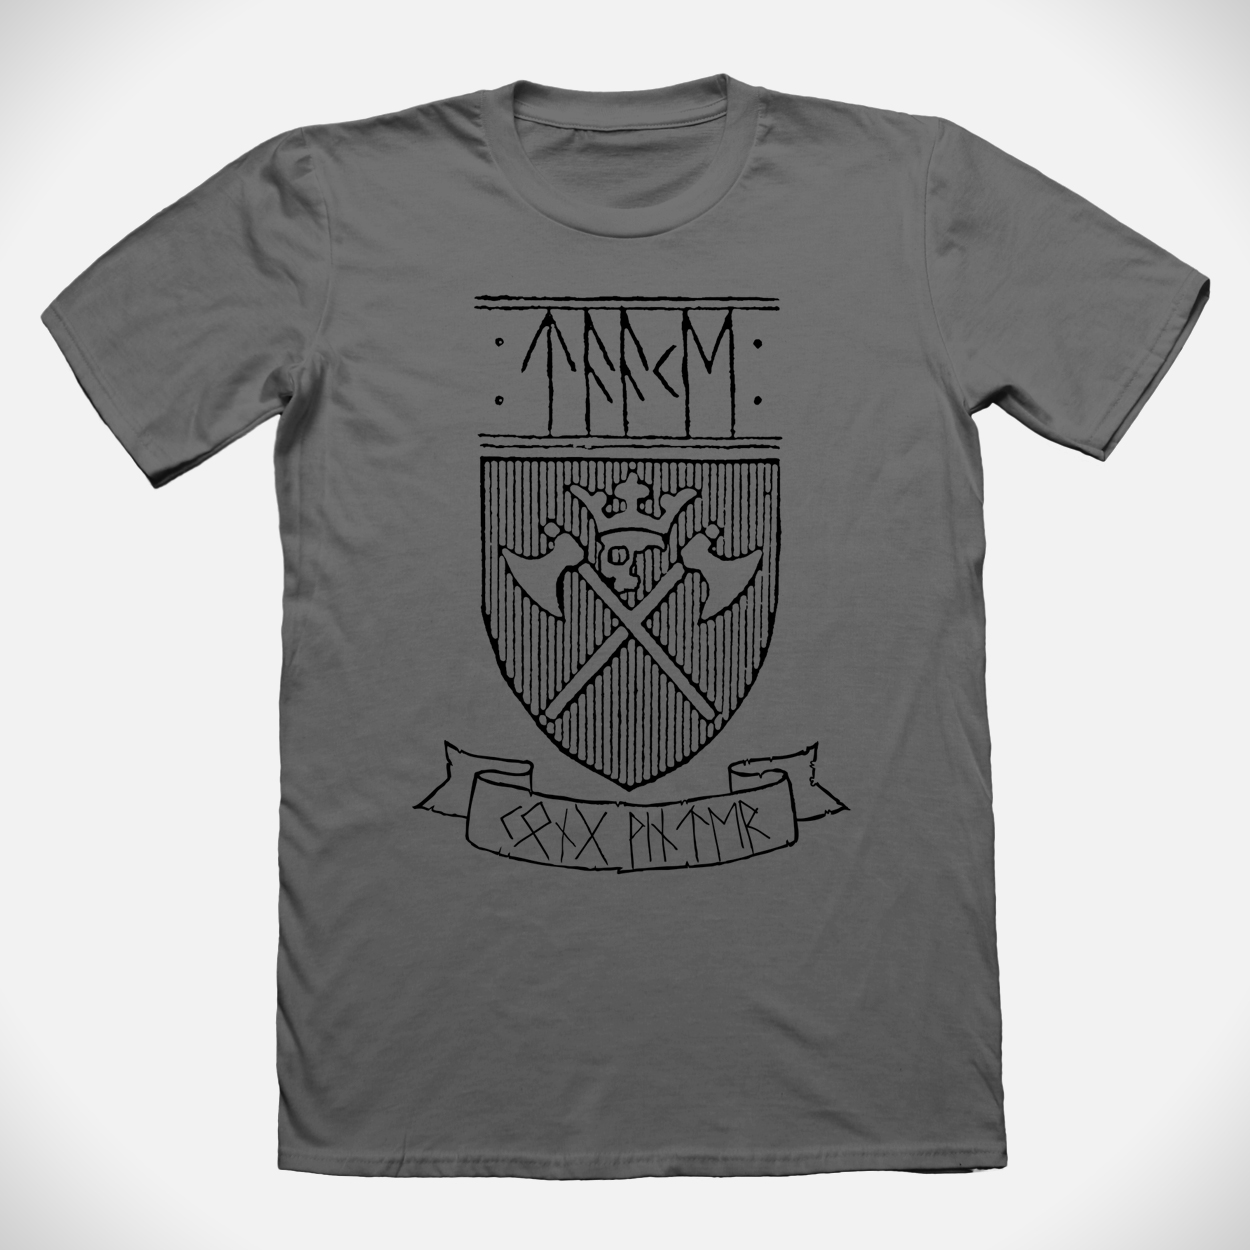 Taake t-shirt (Kong Vinter Edition)